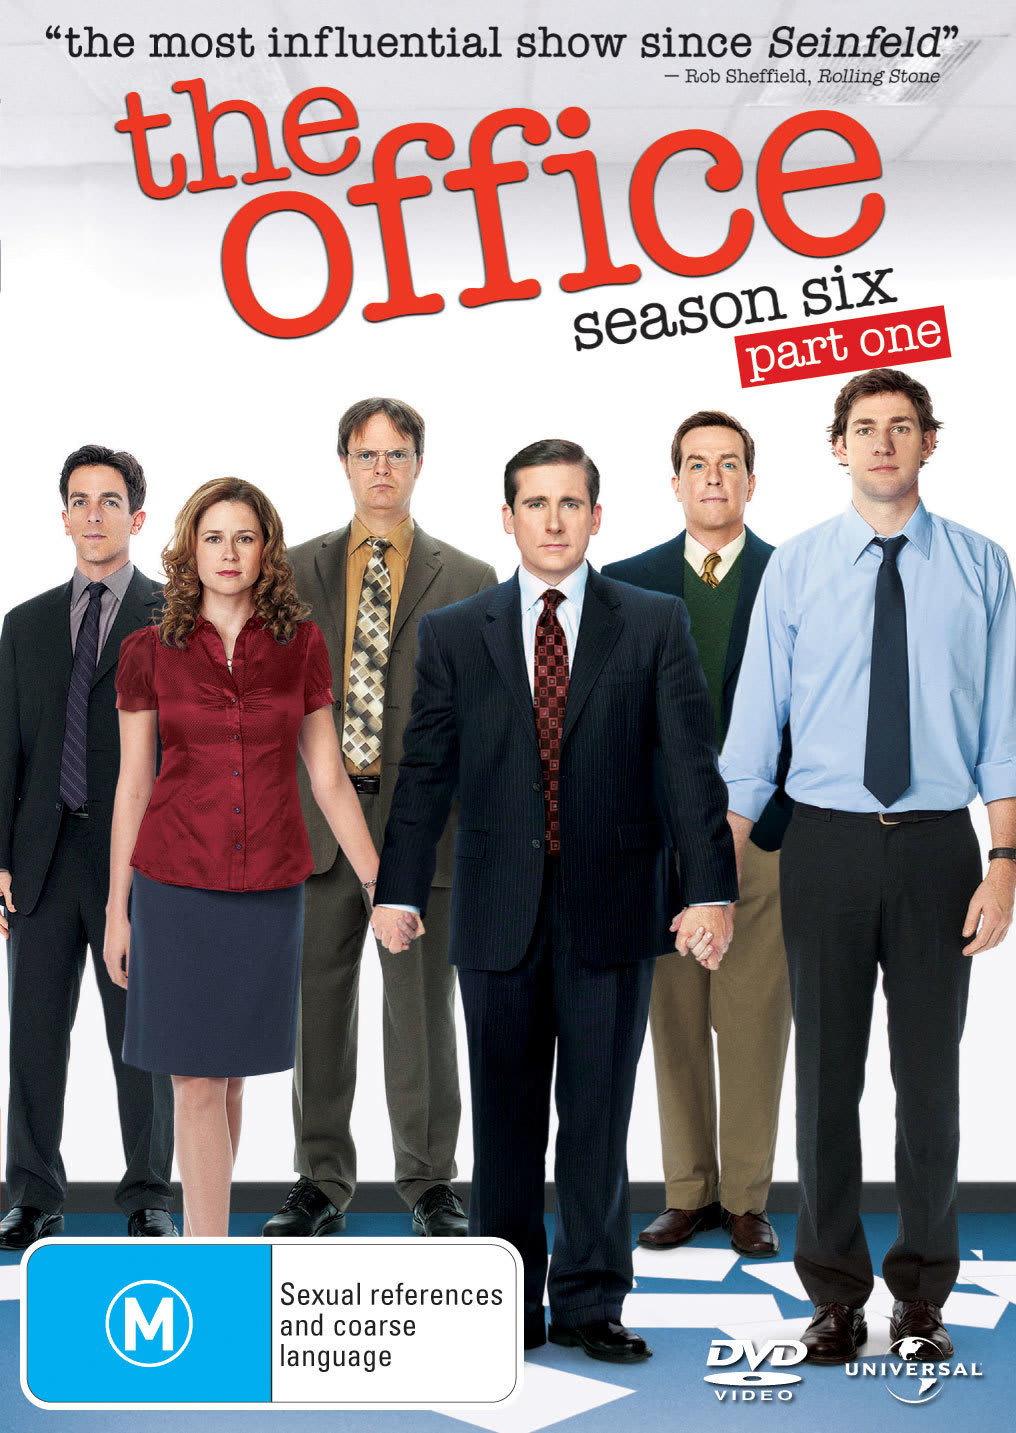 The Office - An American Workplace: Season Six, Part One [DVD]